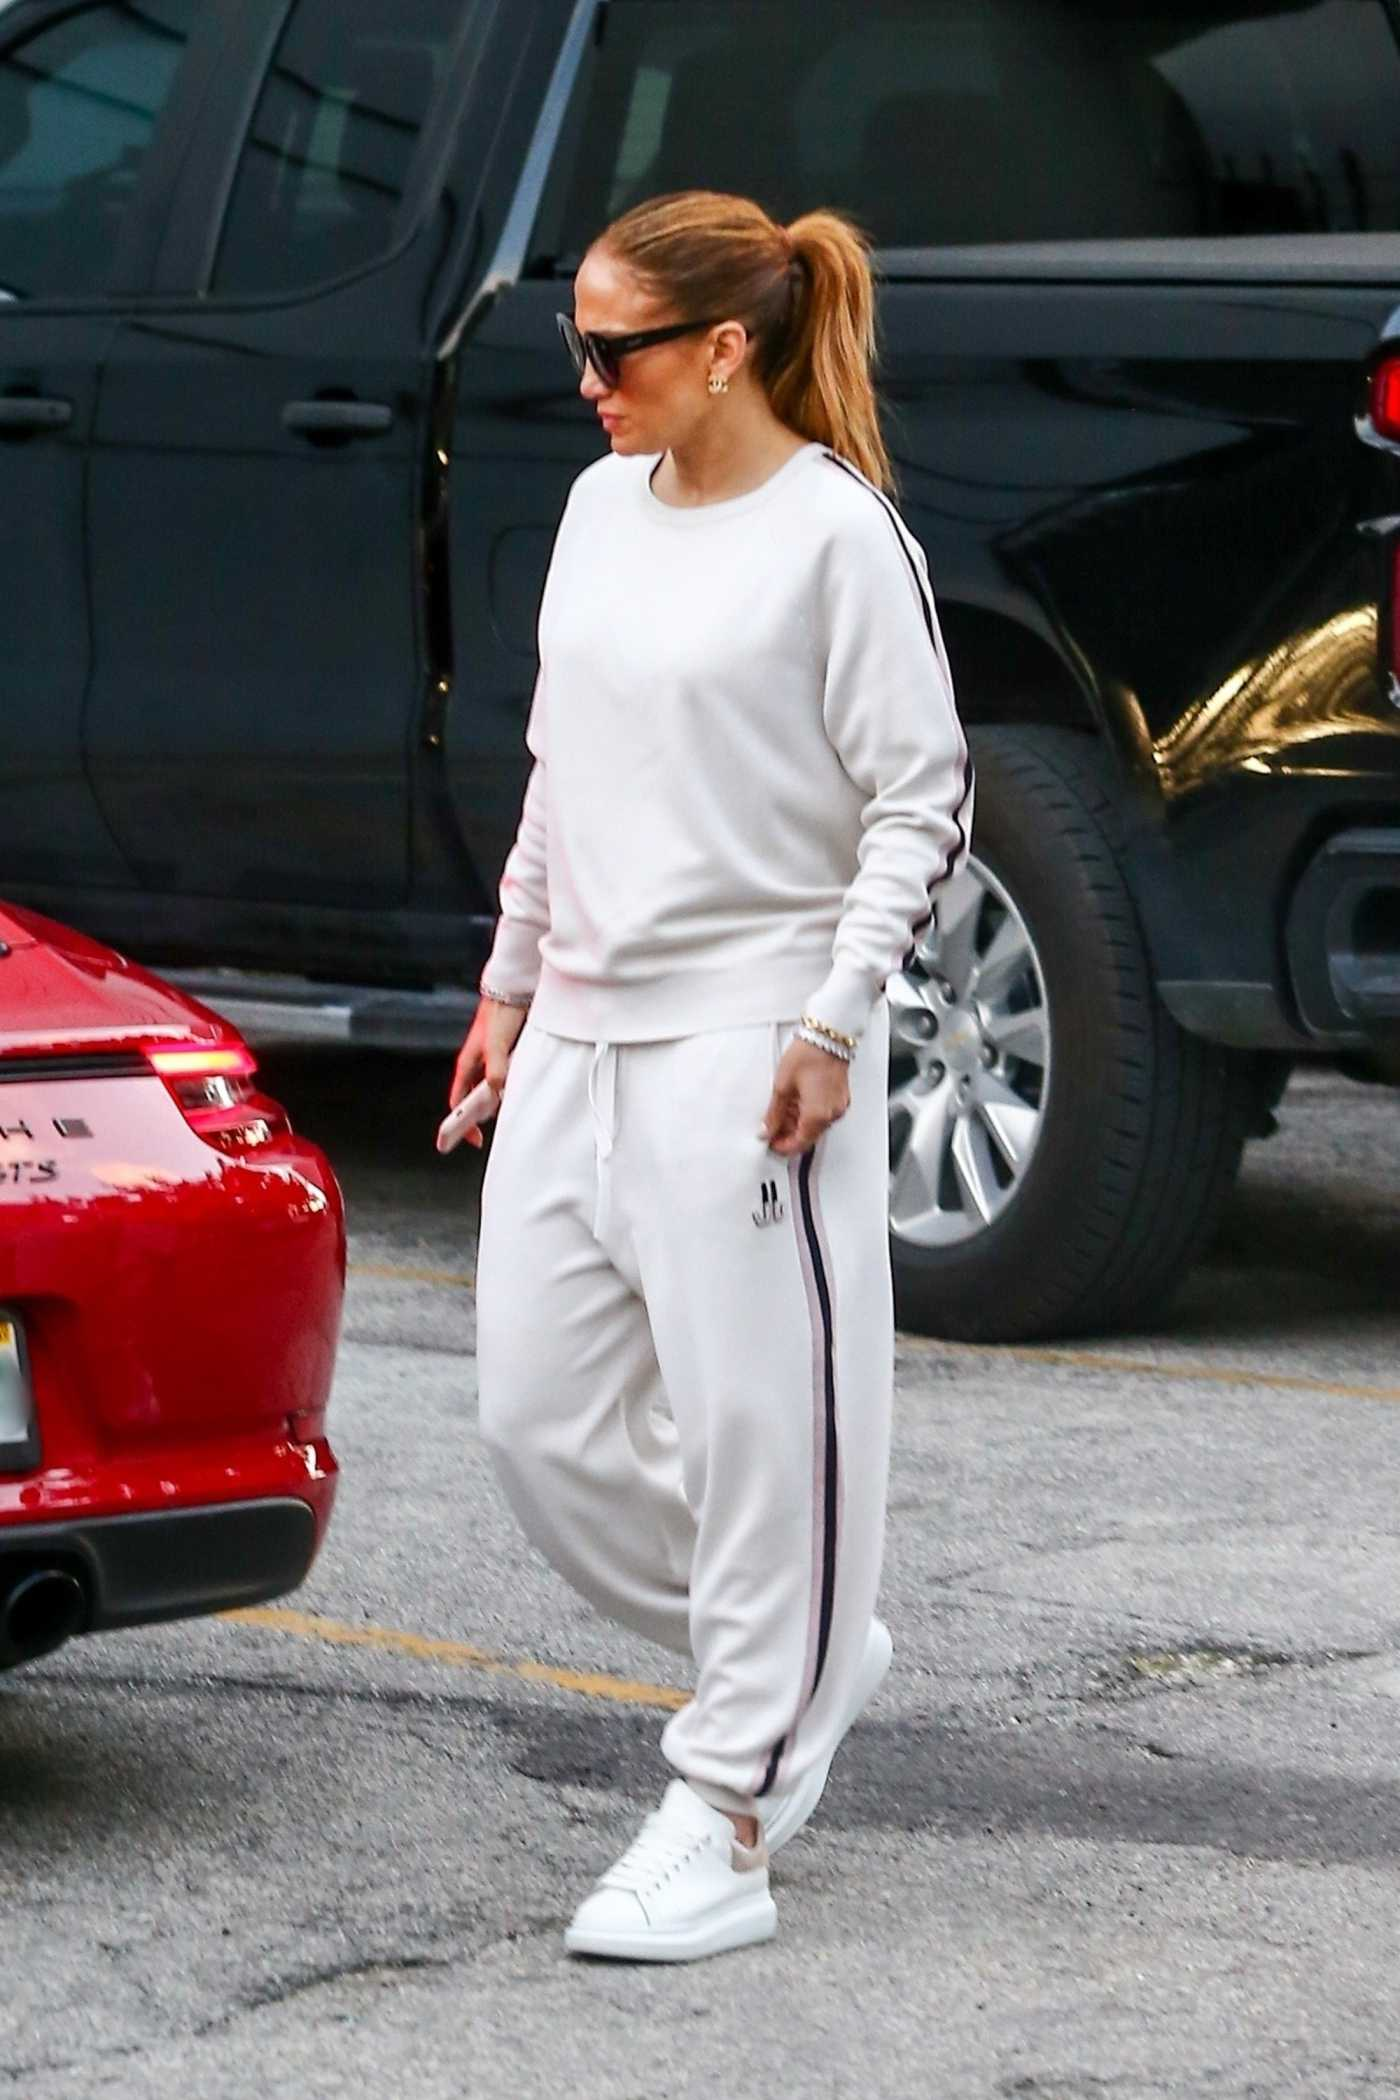 Jennifer Lopez in a White Sneakers Was Seen Out with Alex Rodriguez  in Miami 02/23/2020